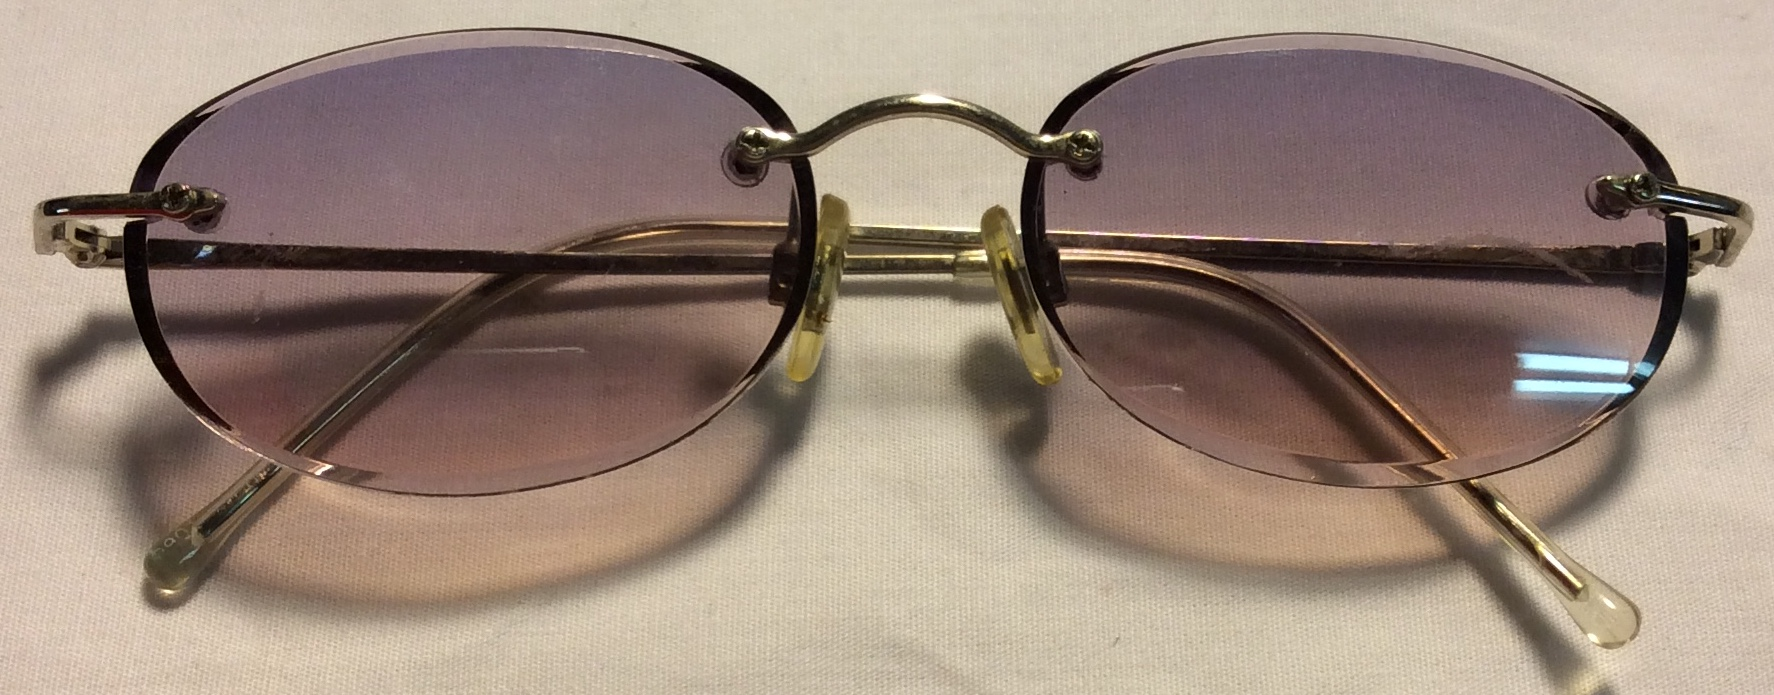 Thin silver metal frames, clear